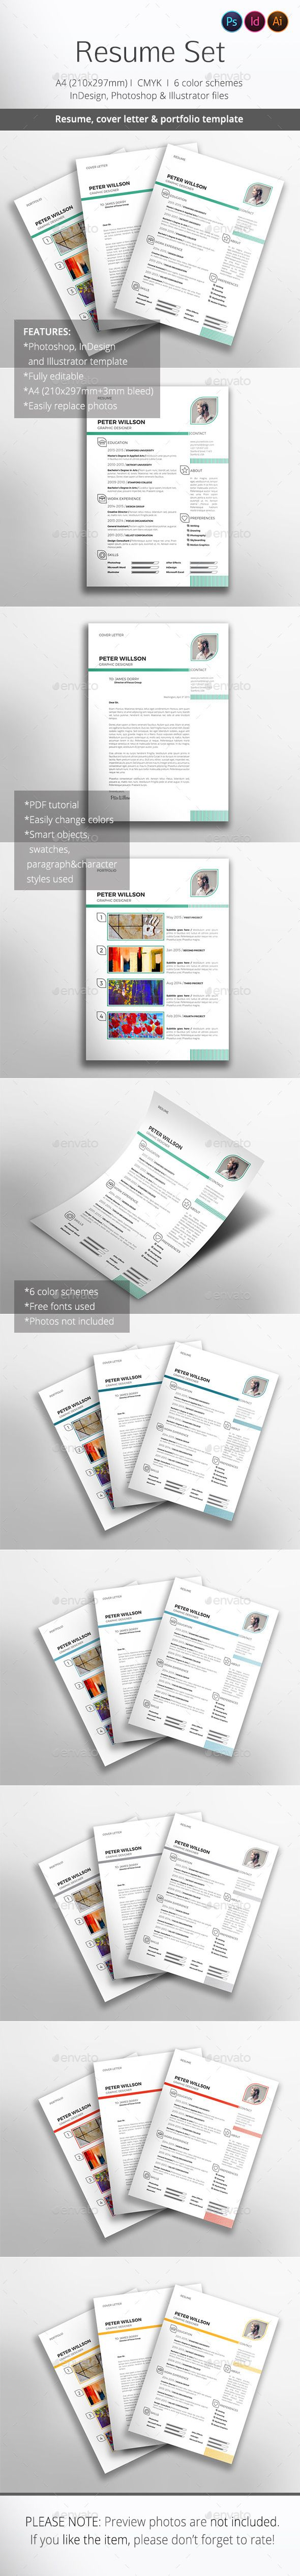 15 Best Resume Images On Pinterest Resume 3rd Millennium And Career